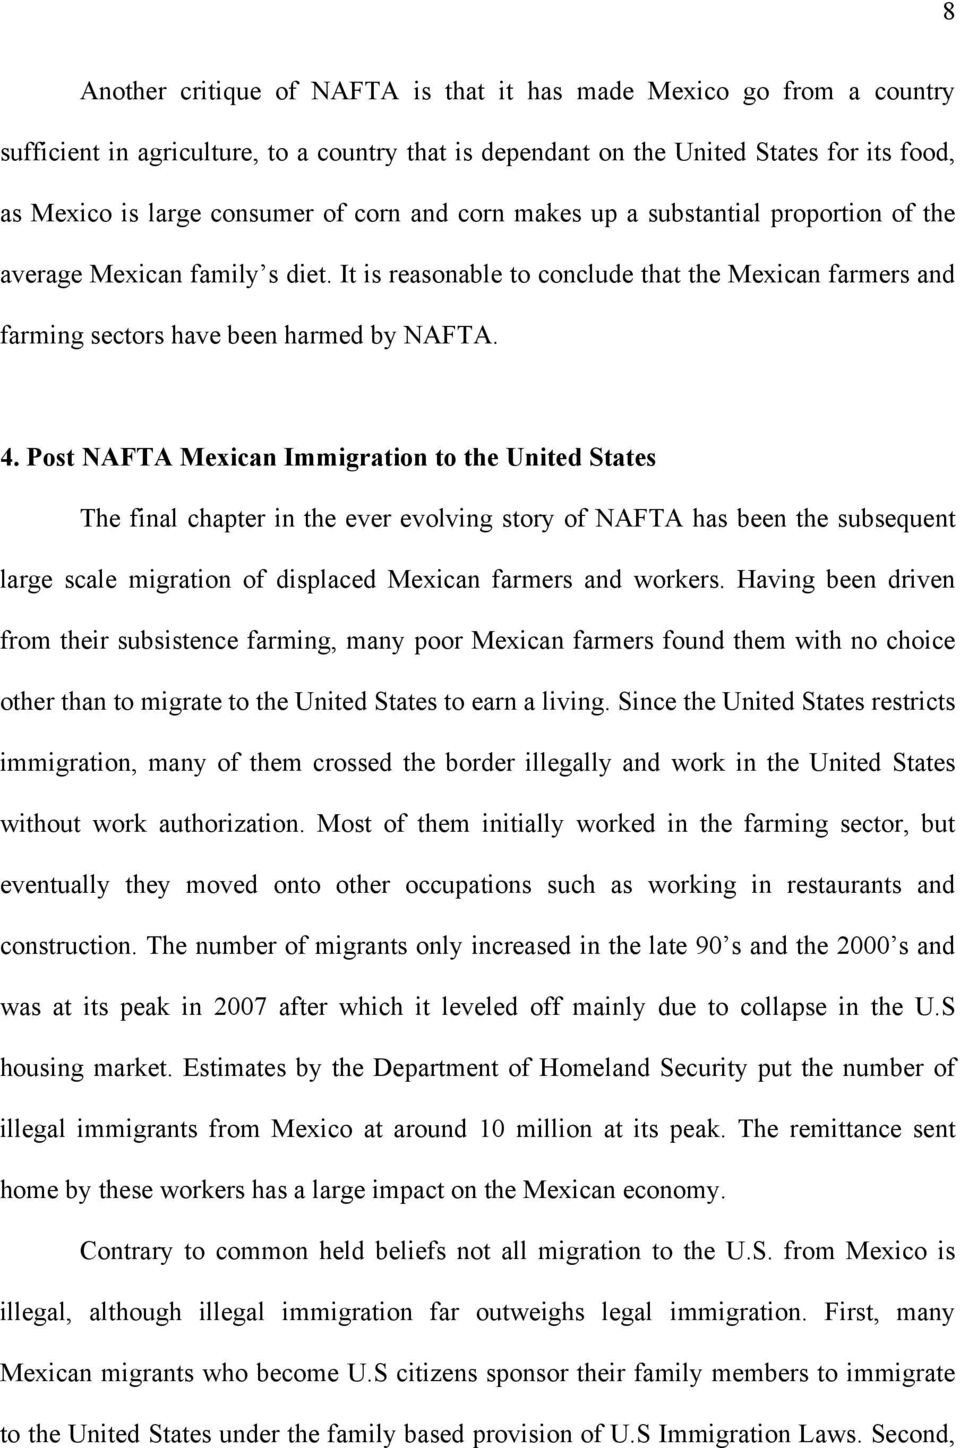 Post NAFTA Mexican Immigration to the United States The final chapter in the ever evolving story of NAFTA has been the subsequent large scale migration of displaced Mexican farmers and workers.